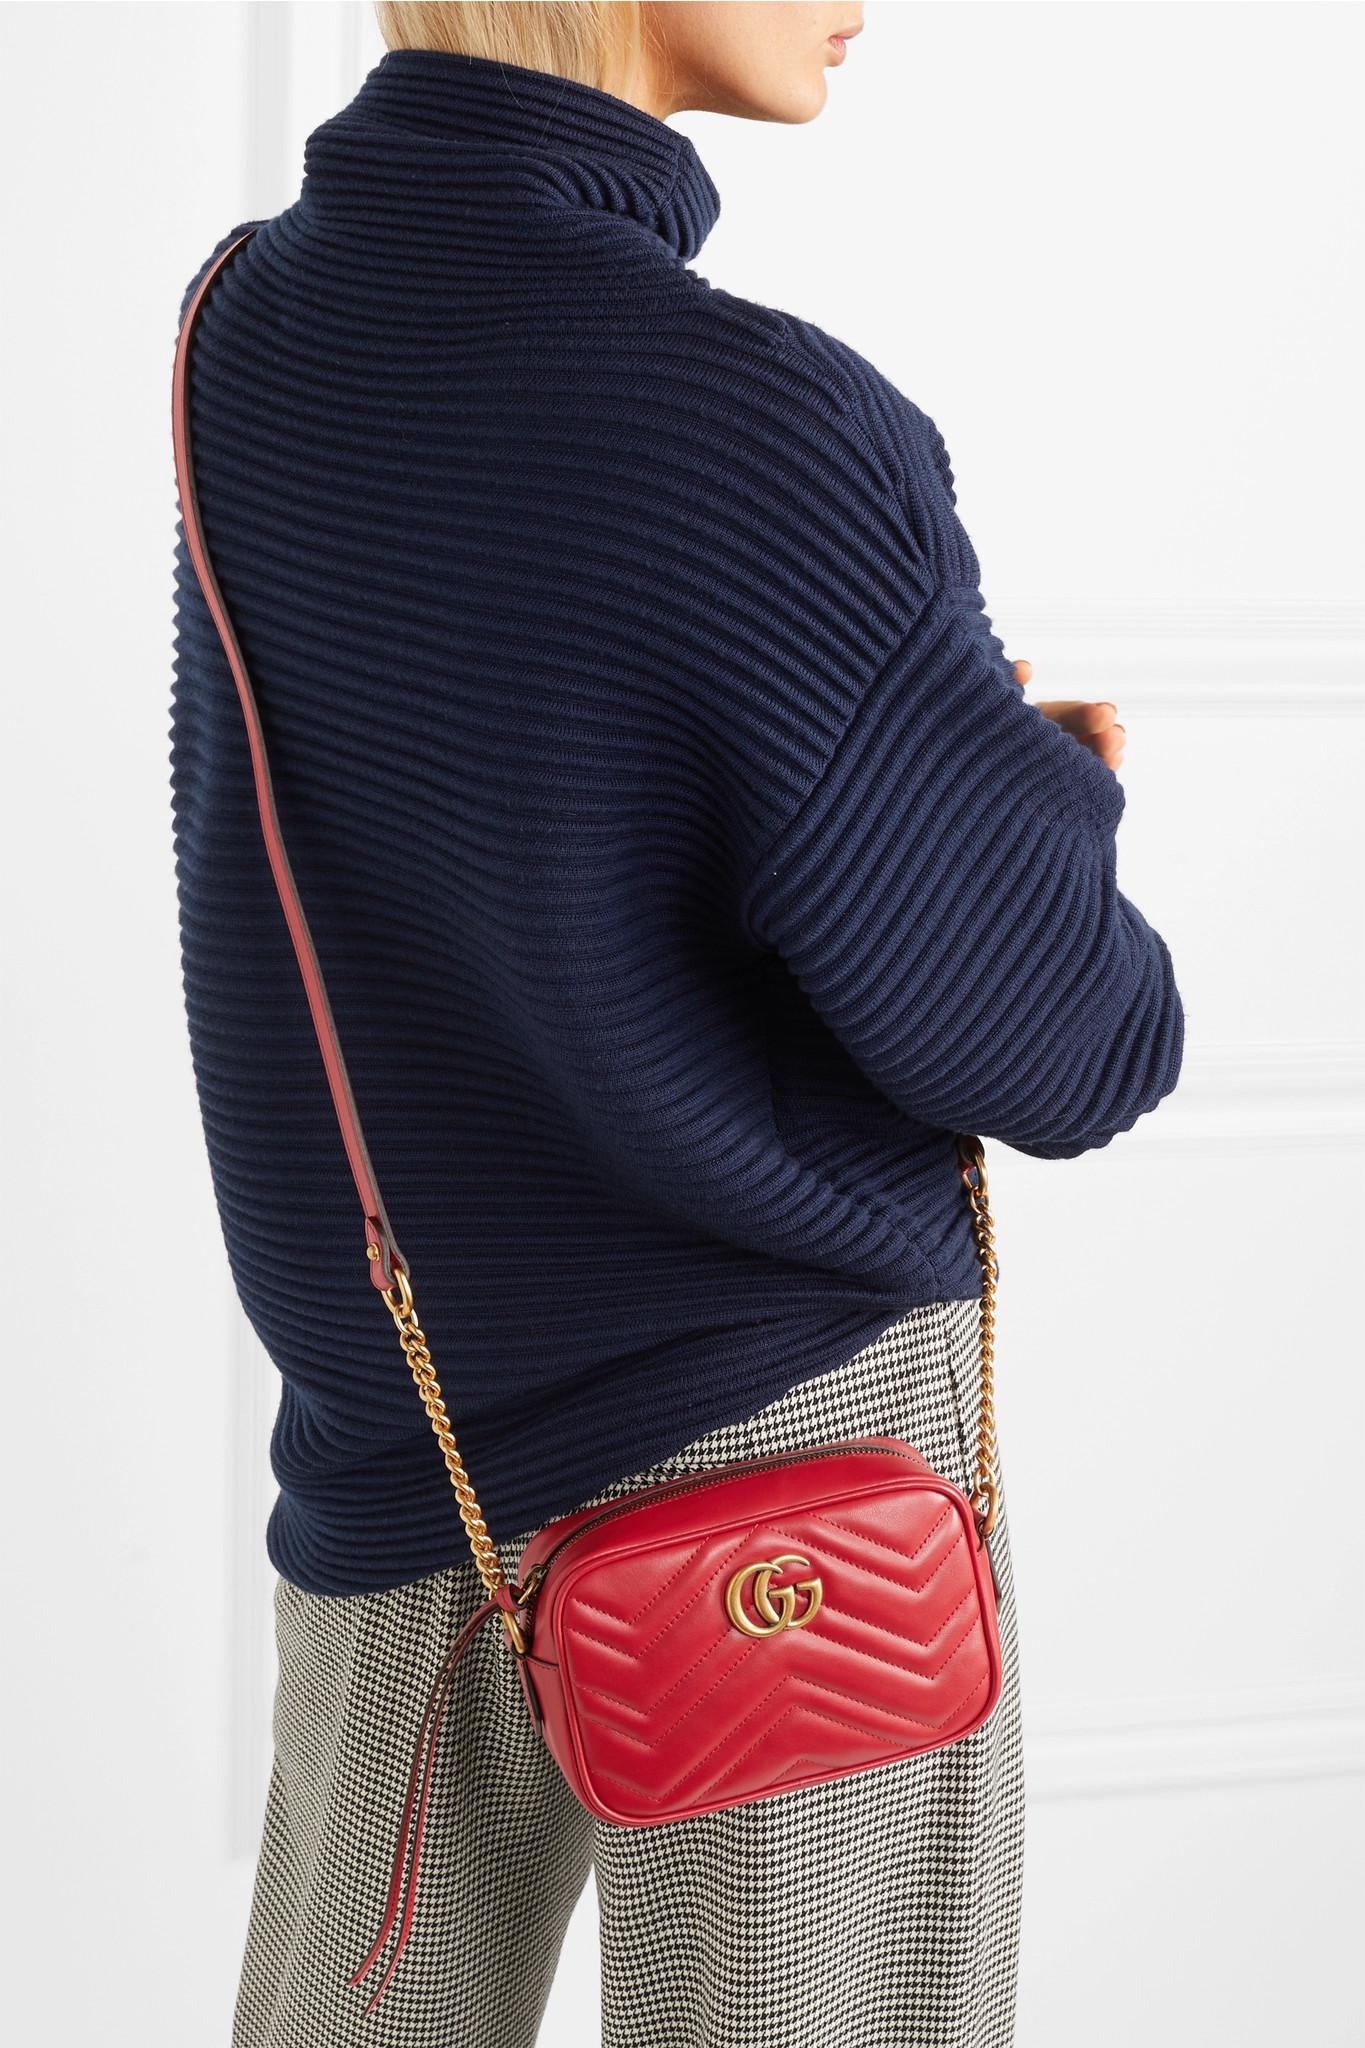 29c082cbf75 Lyst - Gucci Gg Marmont Camera Mini Quilted Leather Shoulder Bag in Red